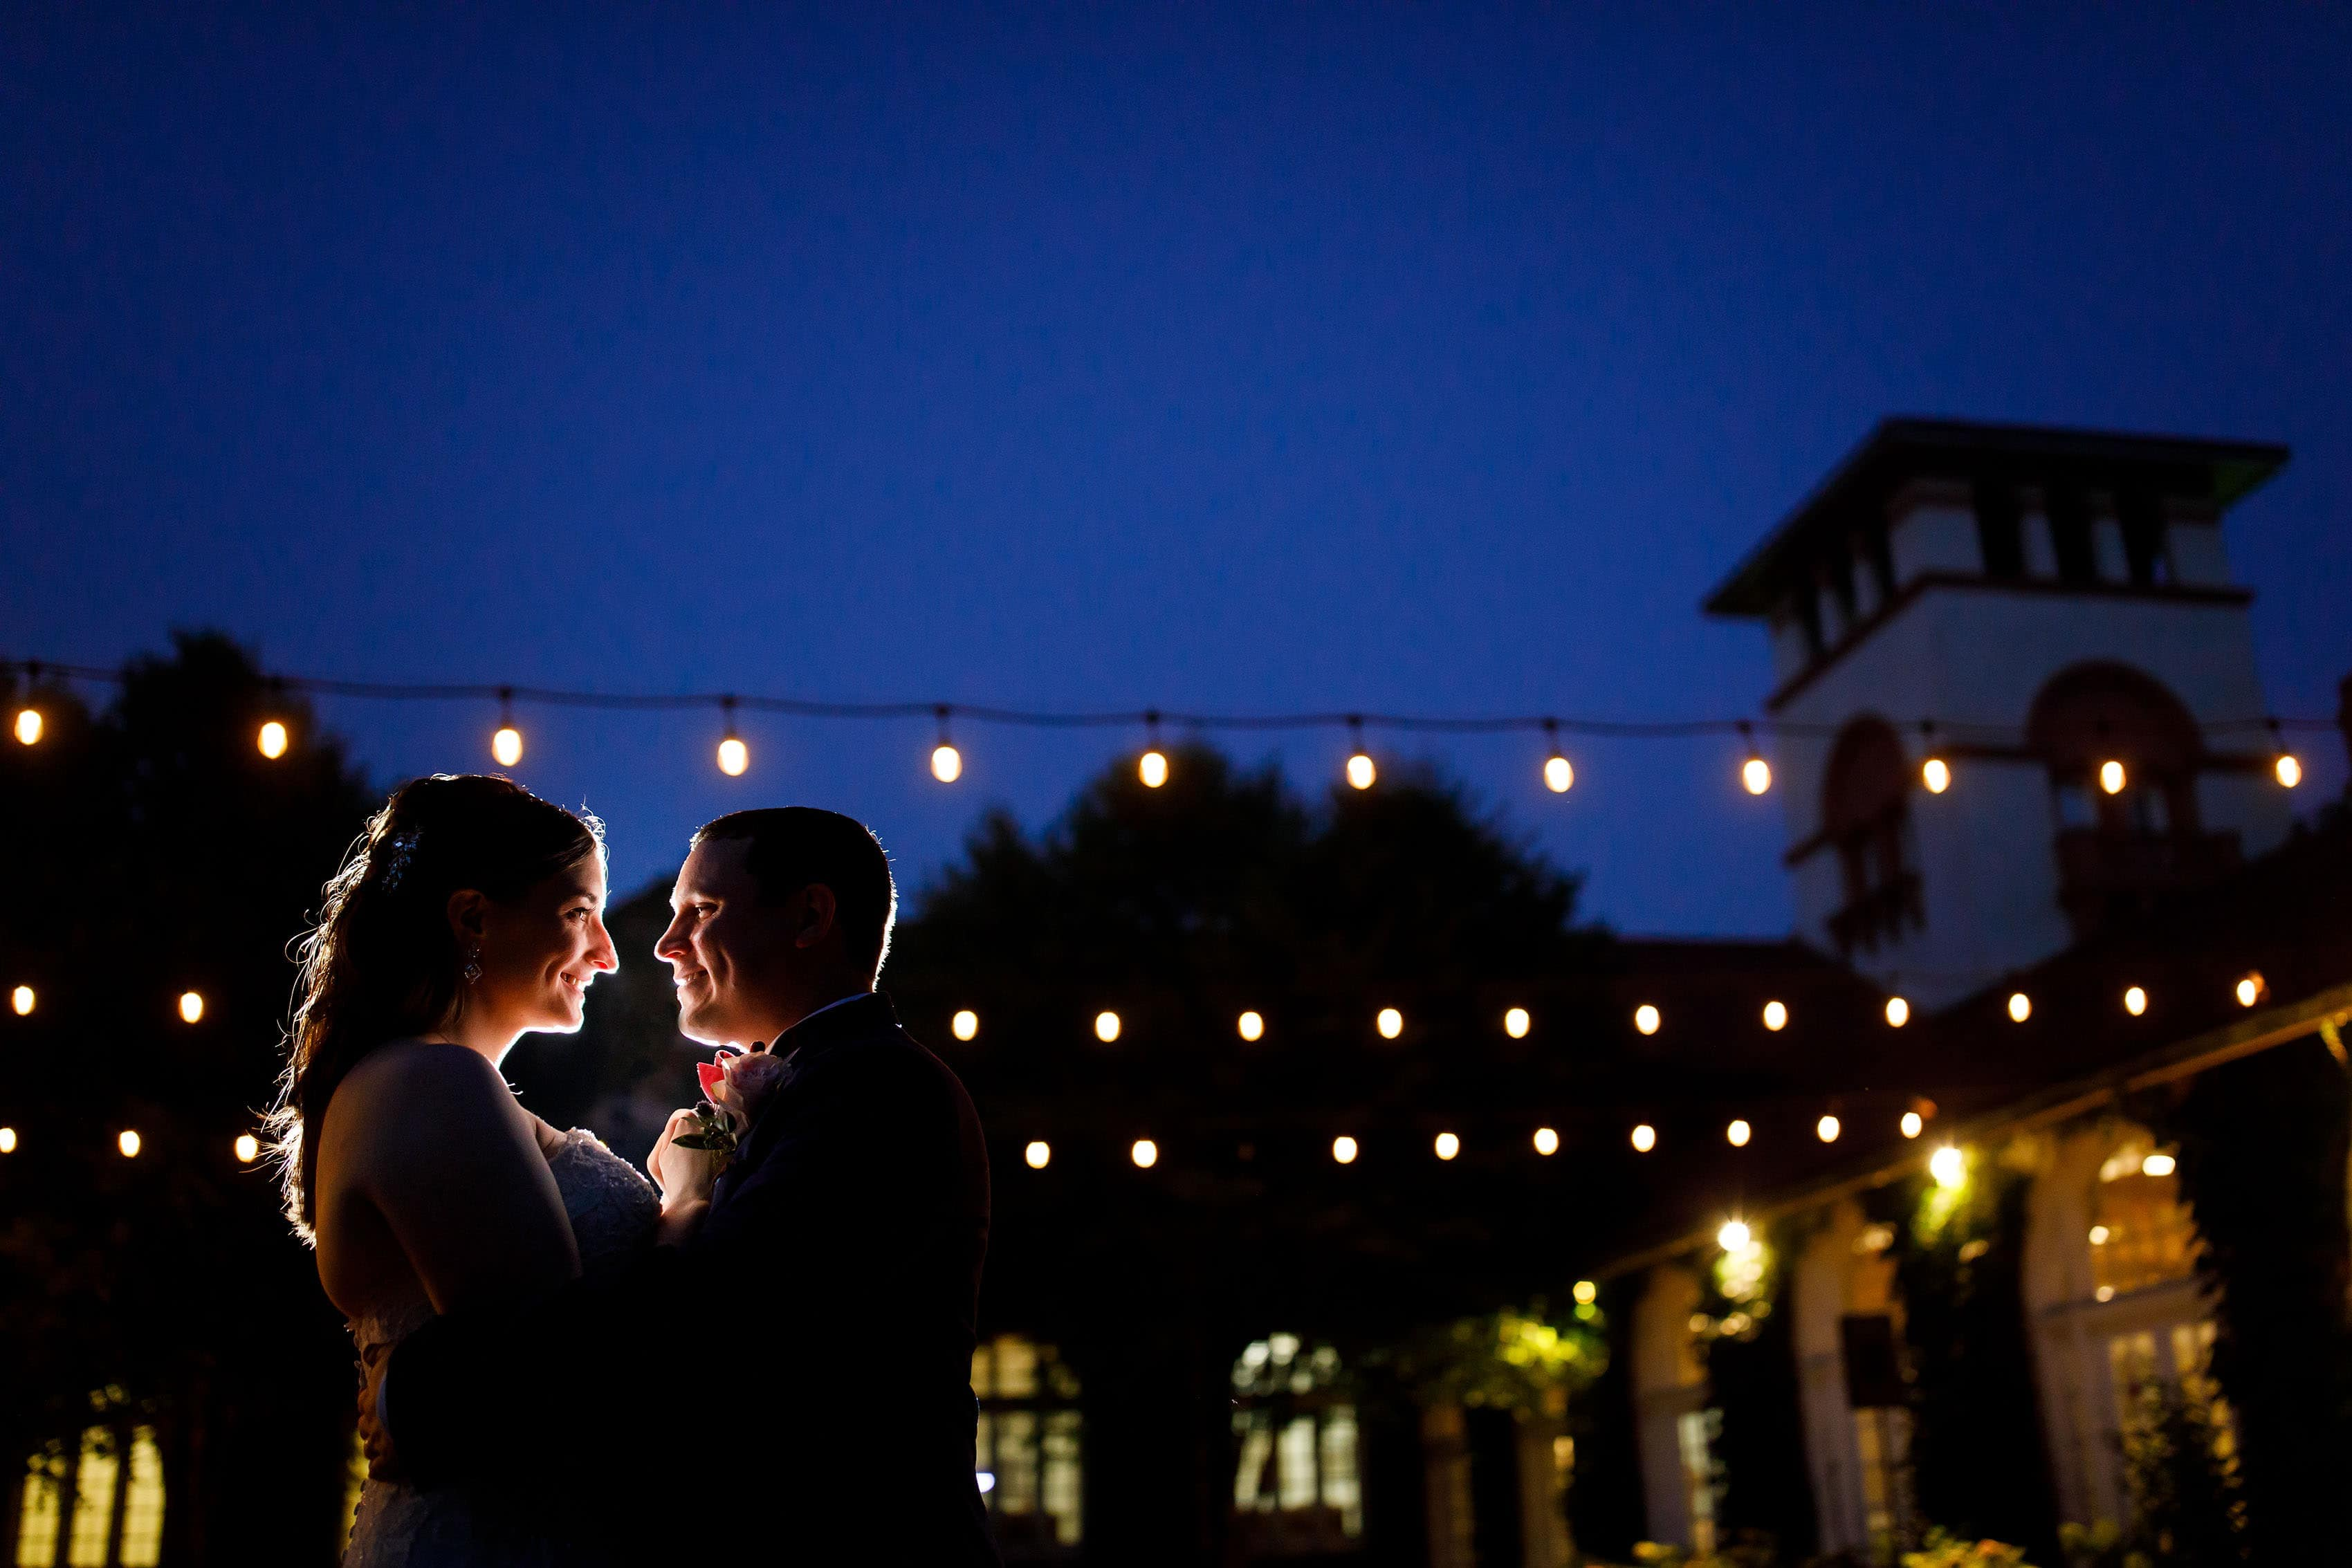 The bride and groom pose for a twilight portrait during their Ravisloe Country Club wedding